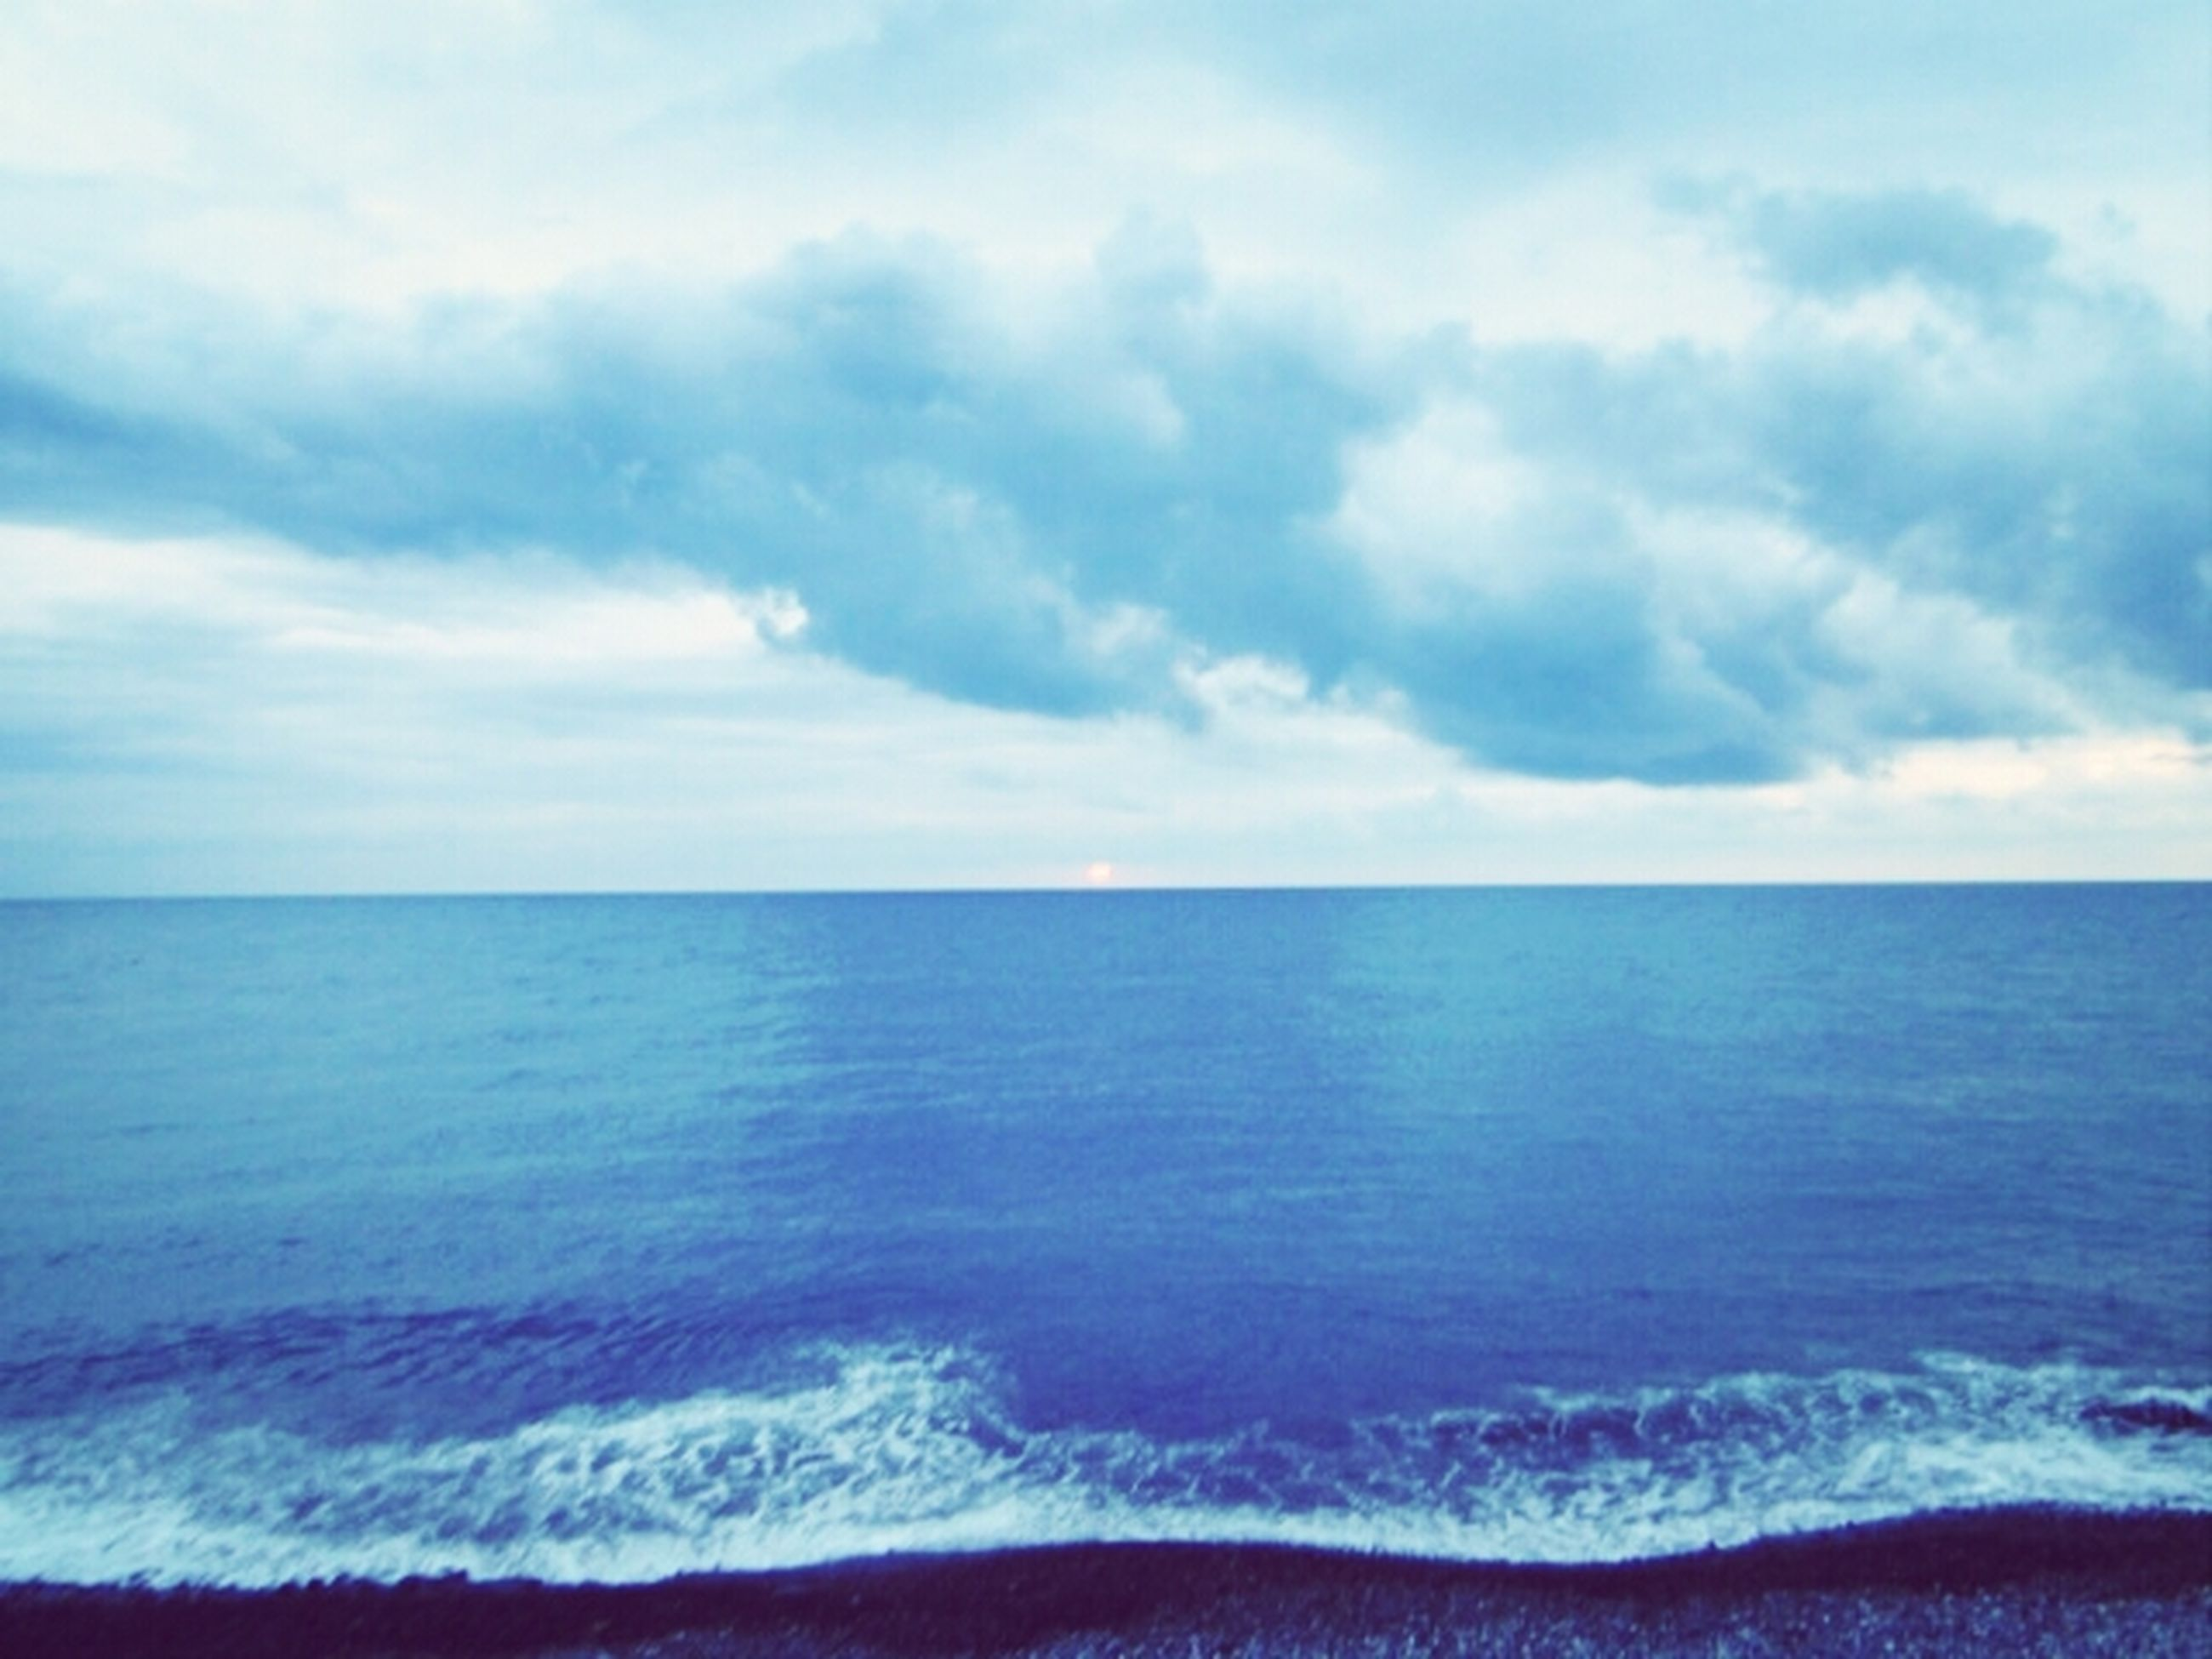 sea, horizon over water, water, sky, scenics, tranquil scene, beauty in nature, tranquility, cloud - sky, nature, cloudy, blue, idyllic, cloud, seascape, wave, beach, waterfront, outdoors, rippled